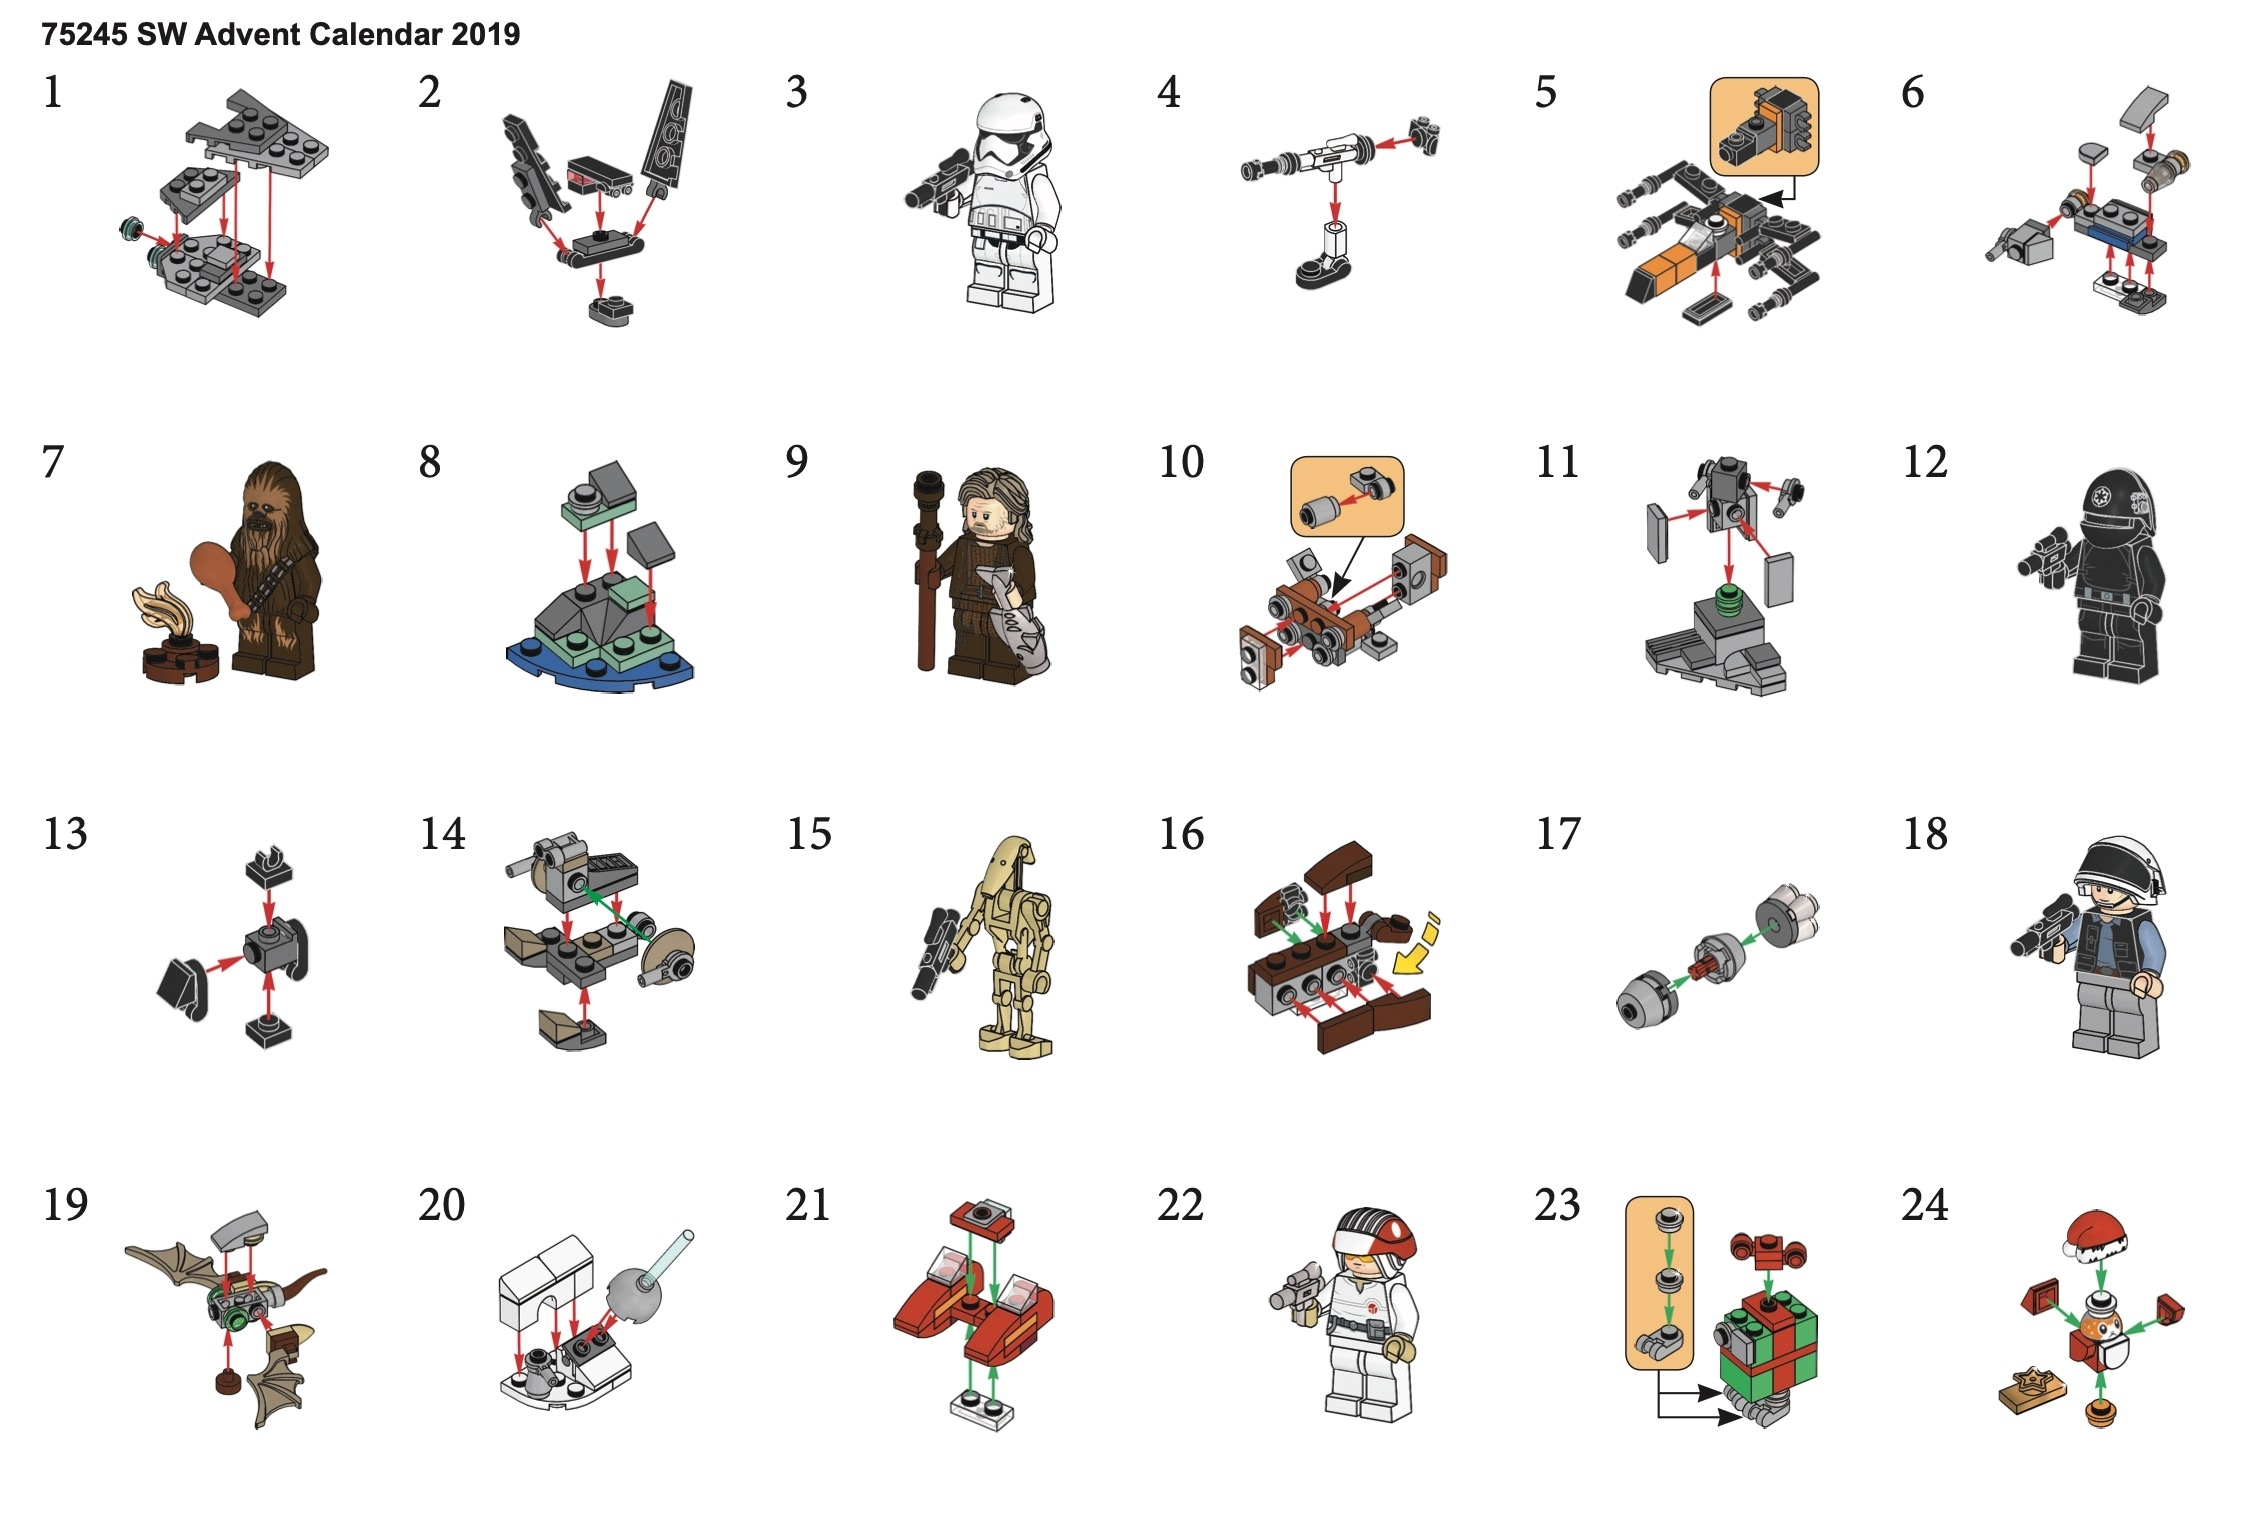 Lego 75245 Star Wars Advent Calendar Instructions, Star Wars inside Lego Star Wars Callendar 2019